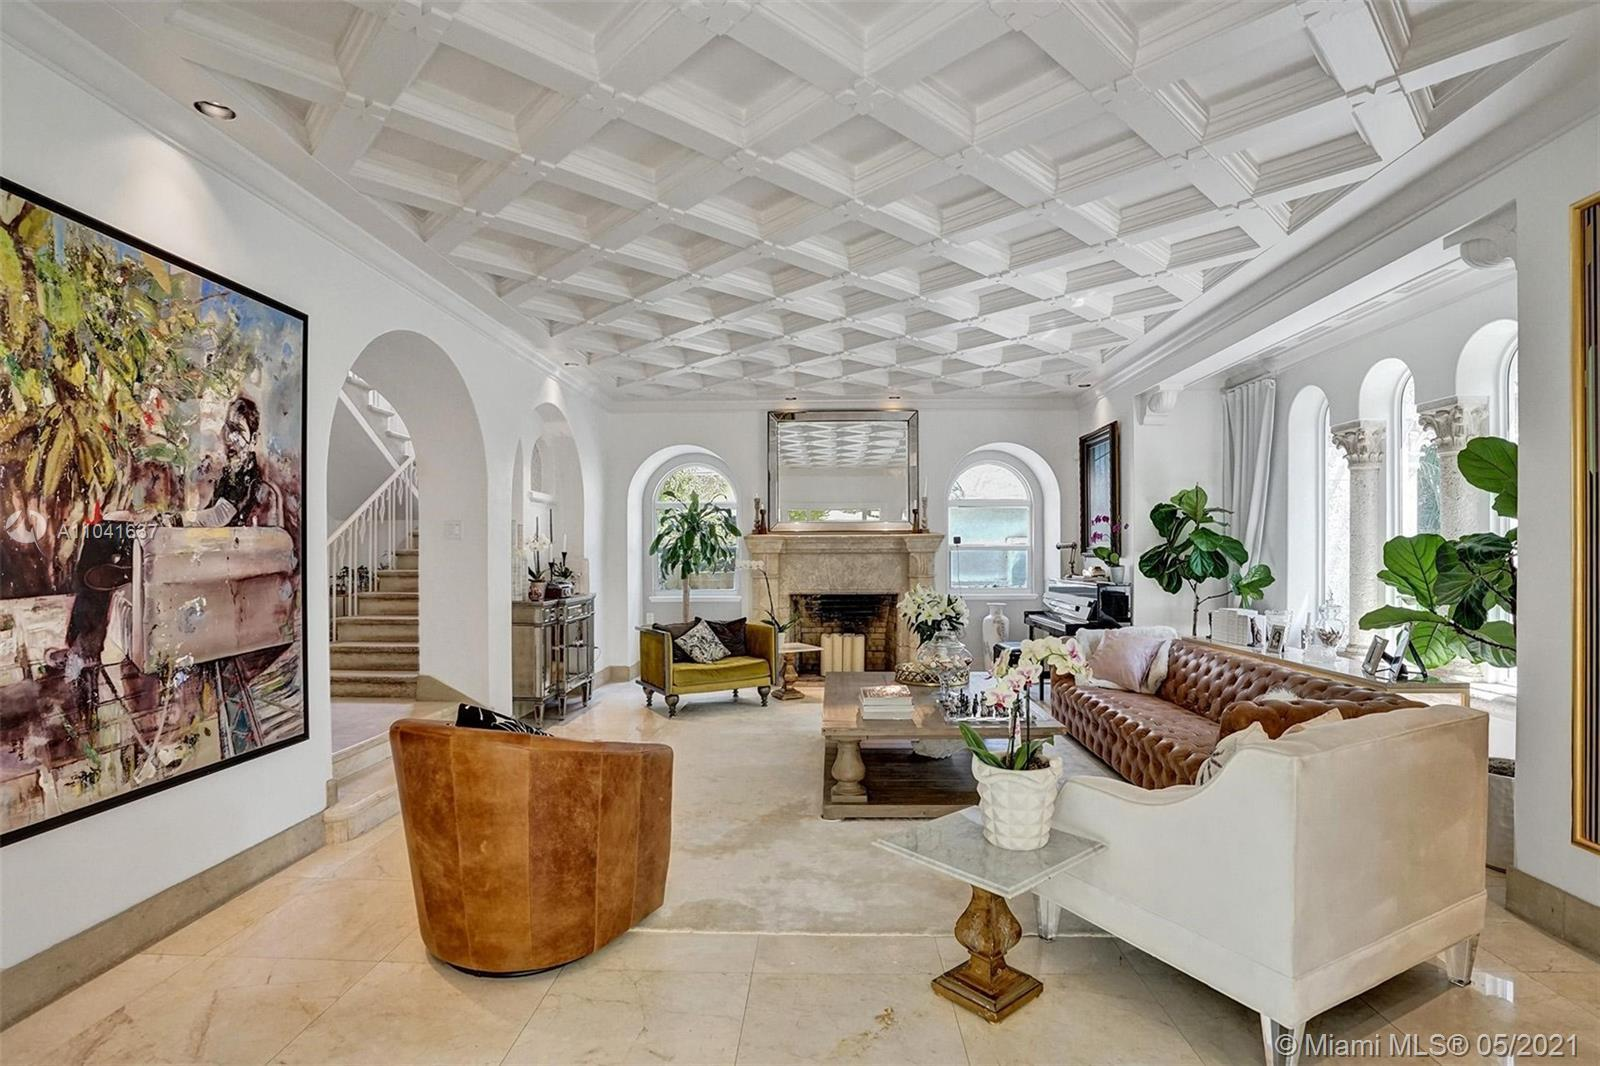 The best of what Miami has to offer in this fully renovated Mediterranean masterpiece on Miami Beach